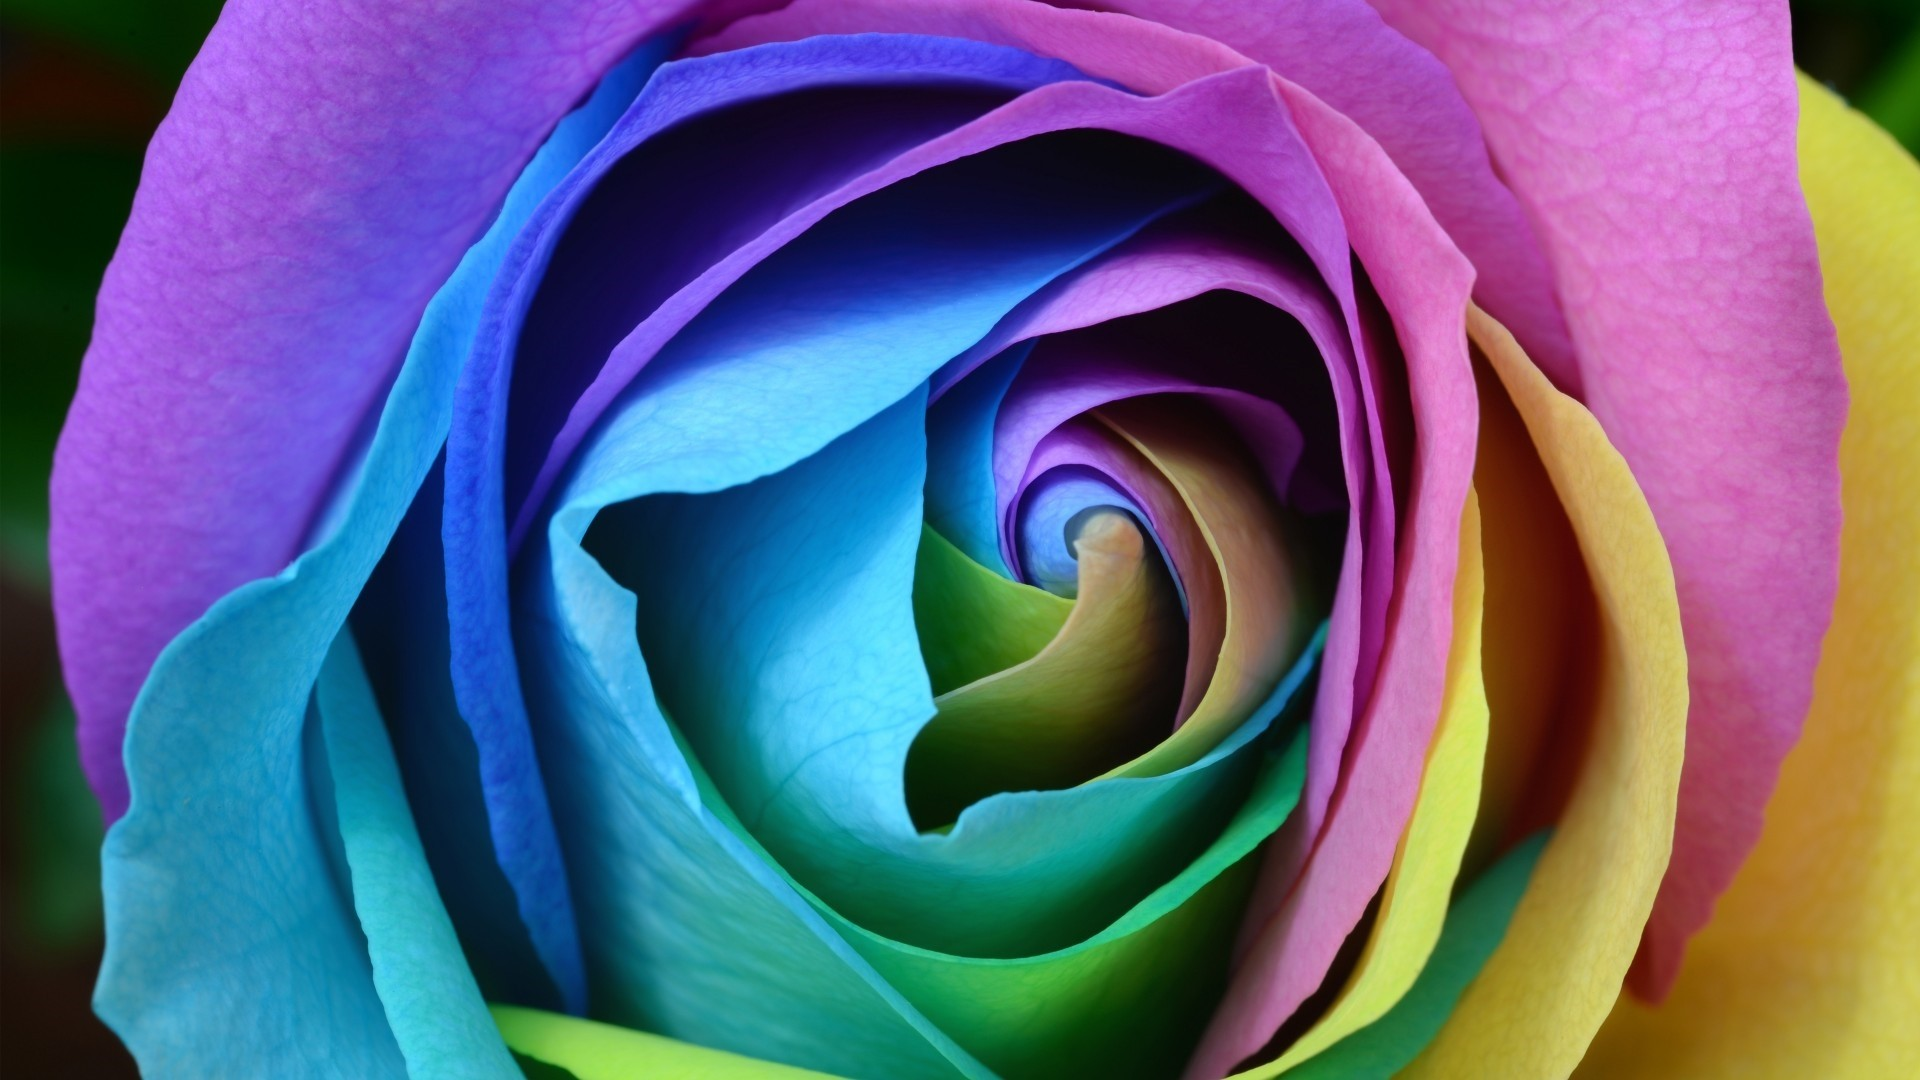 Rainbow Rose Wallpaper Picture hd